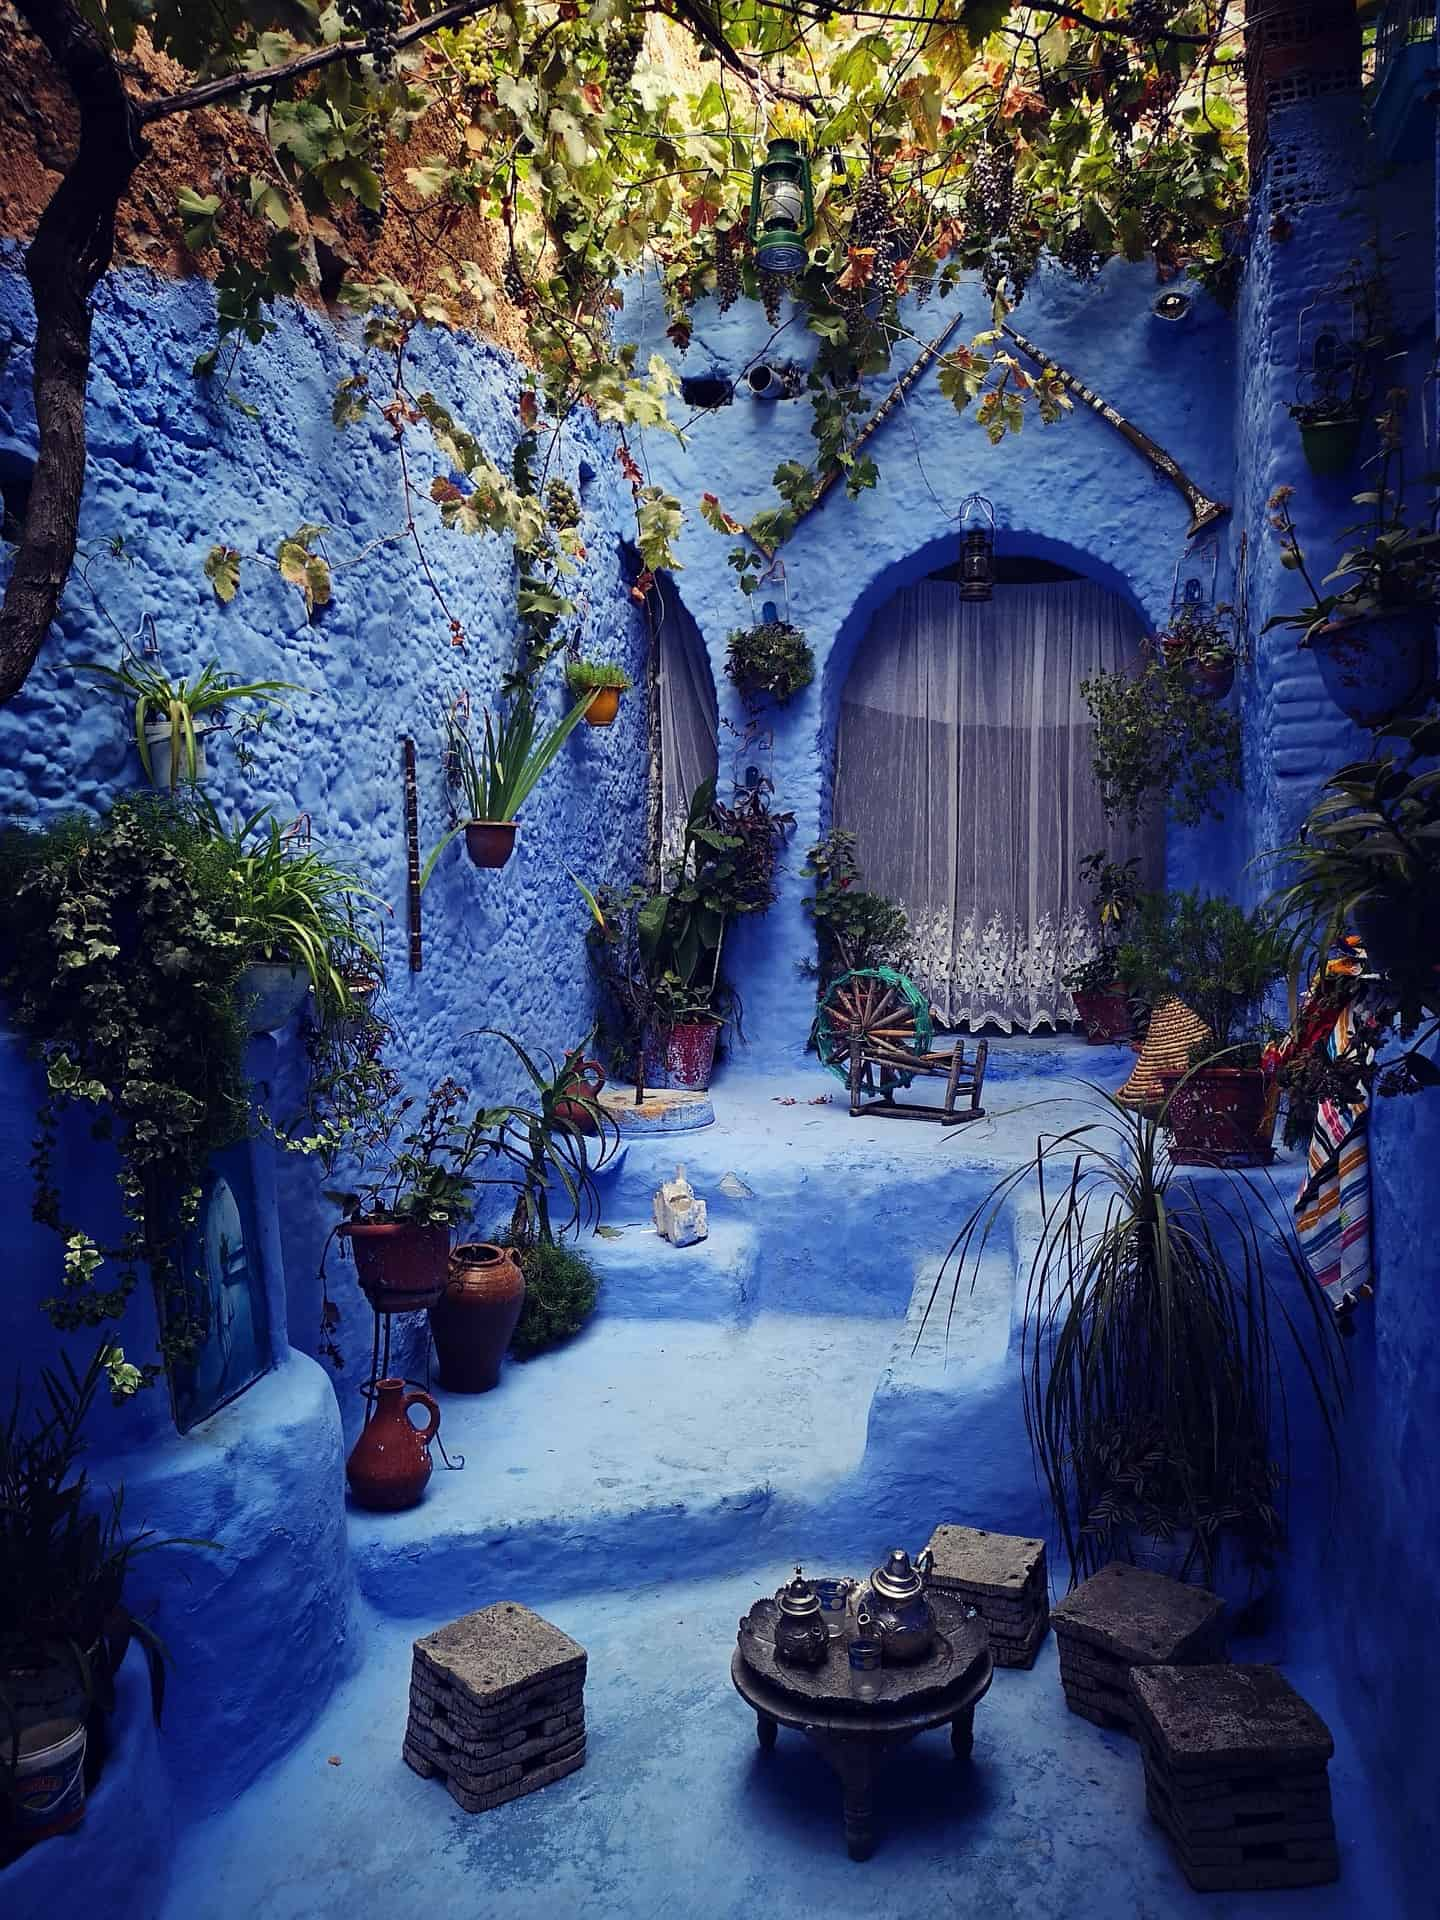 Chefchaouen in Morrocco